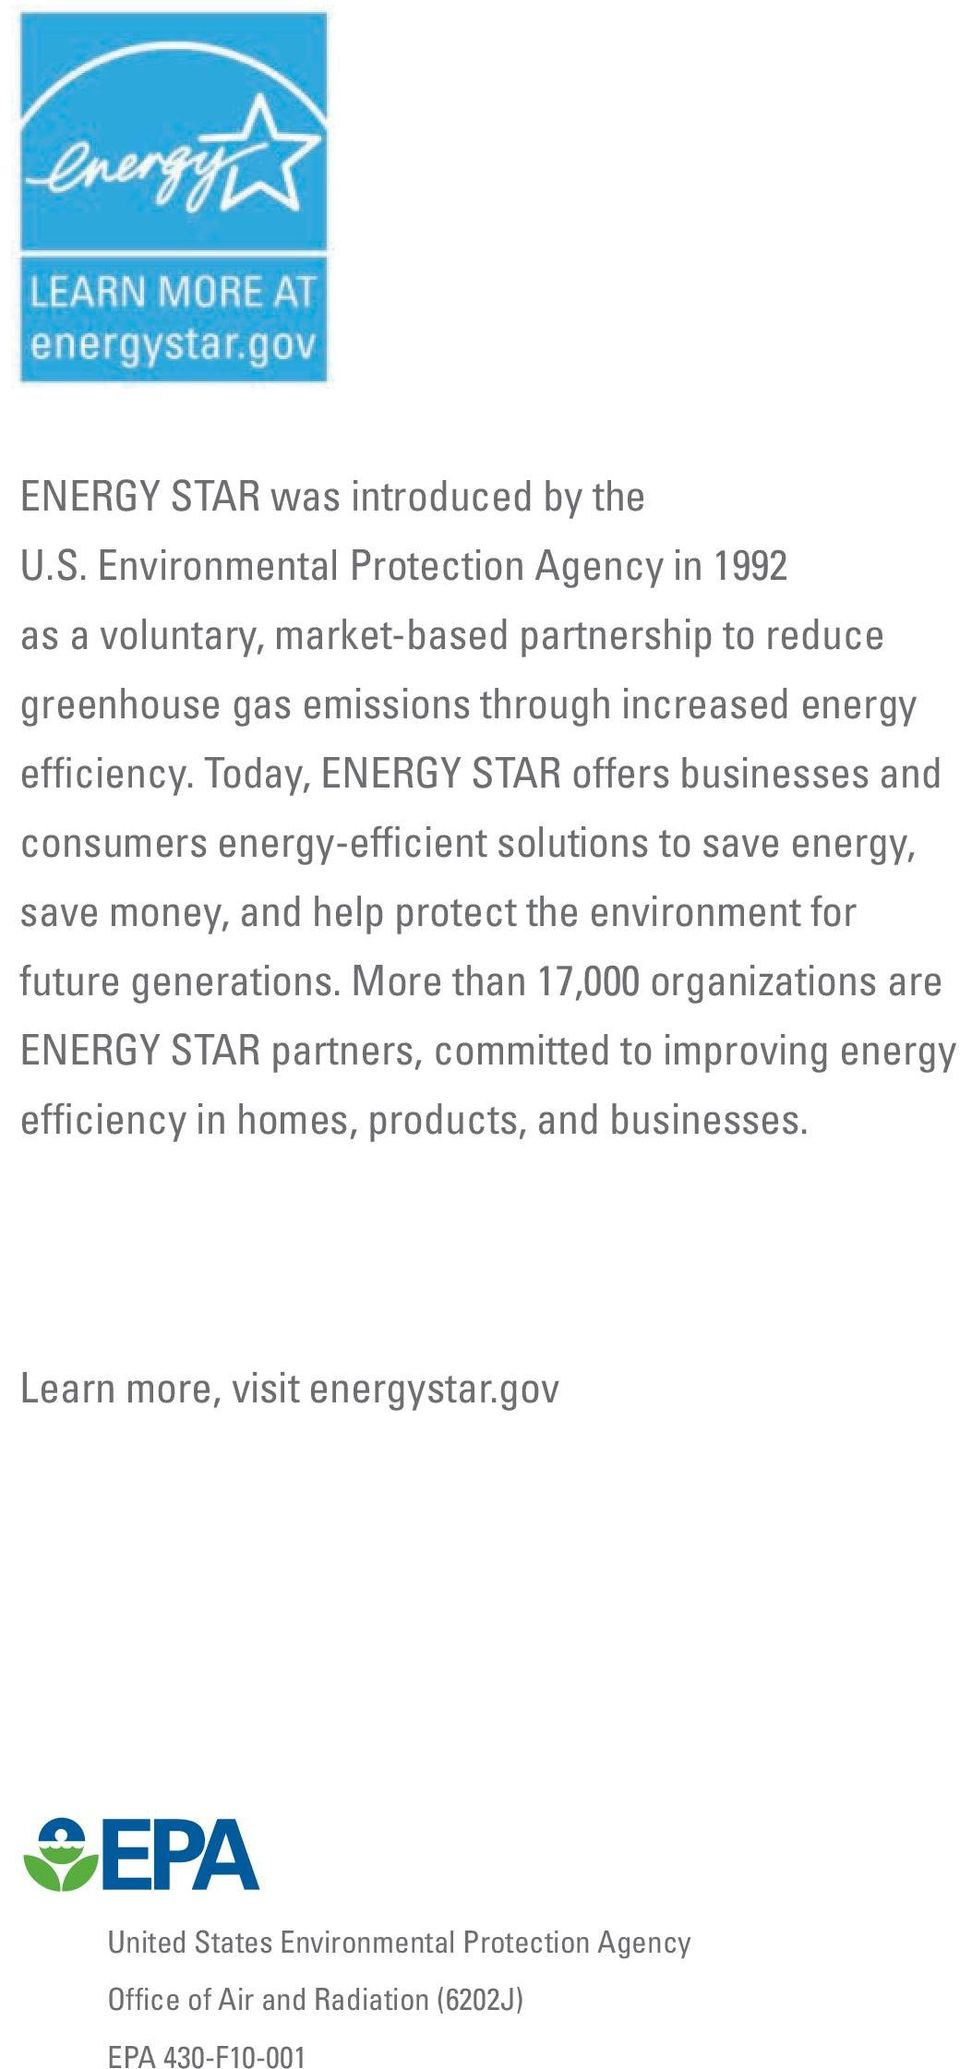 More than 17,000 organizations are ENERGY STAR partners, committed to improving energy efficiency in homes, products, and businesses. Learn more, visit energystar.